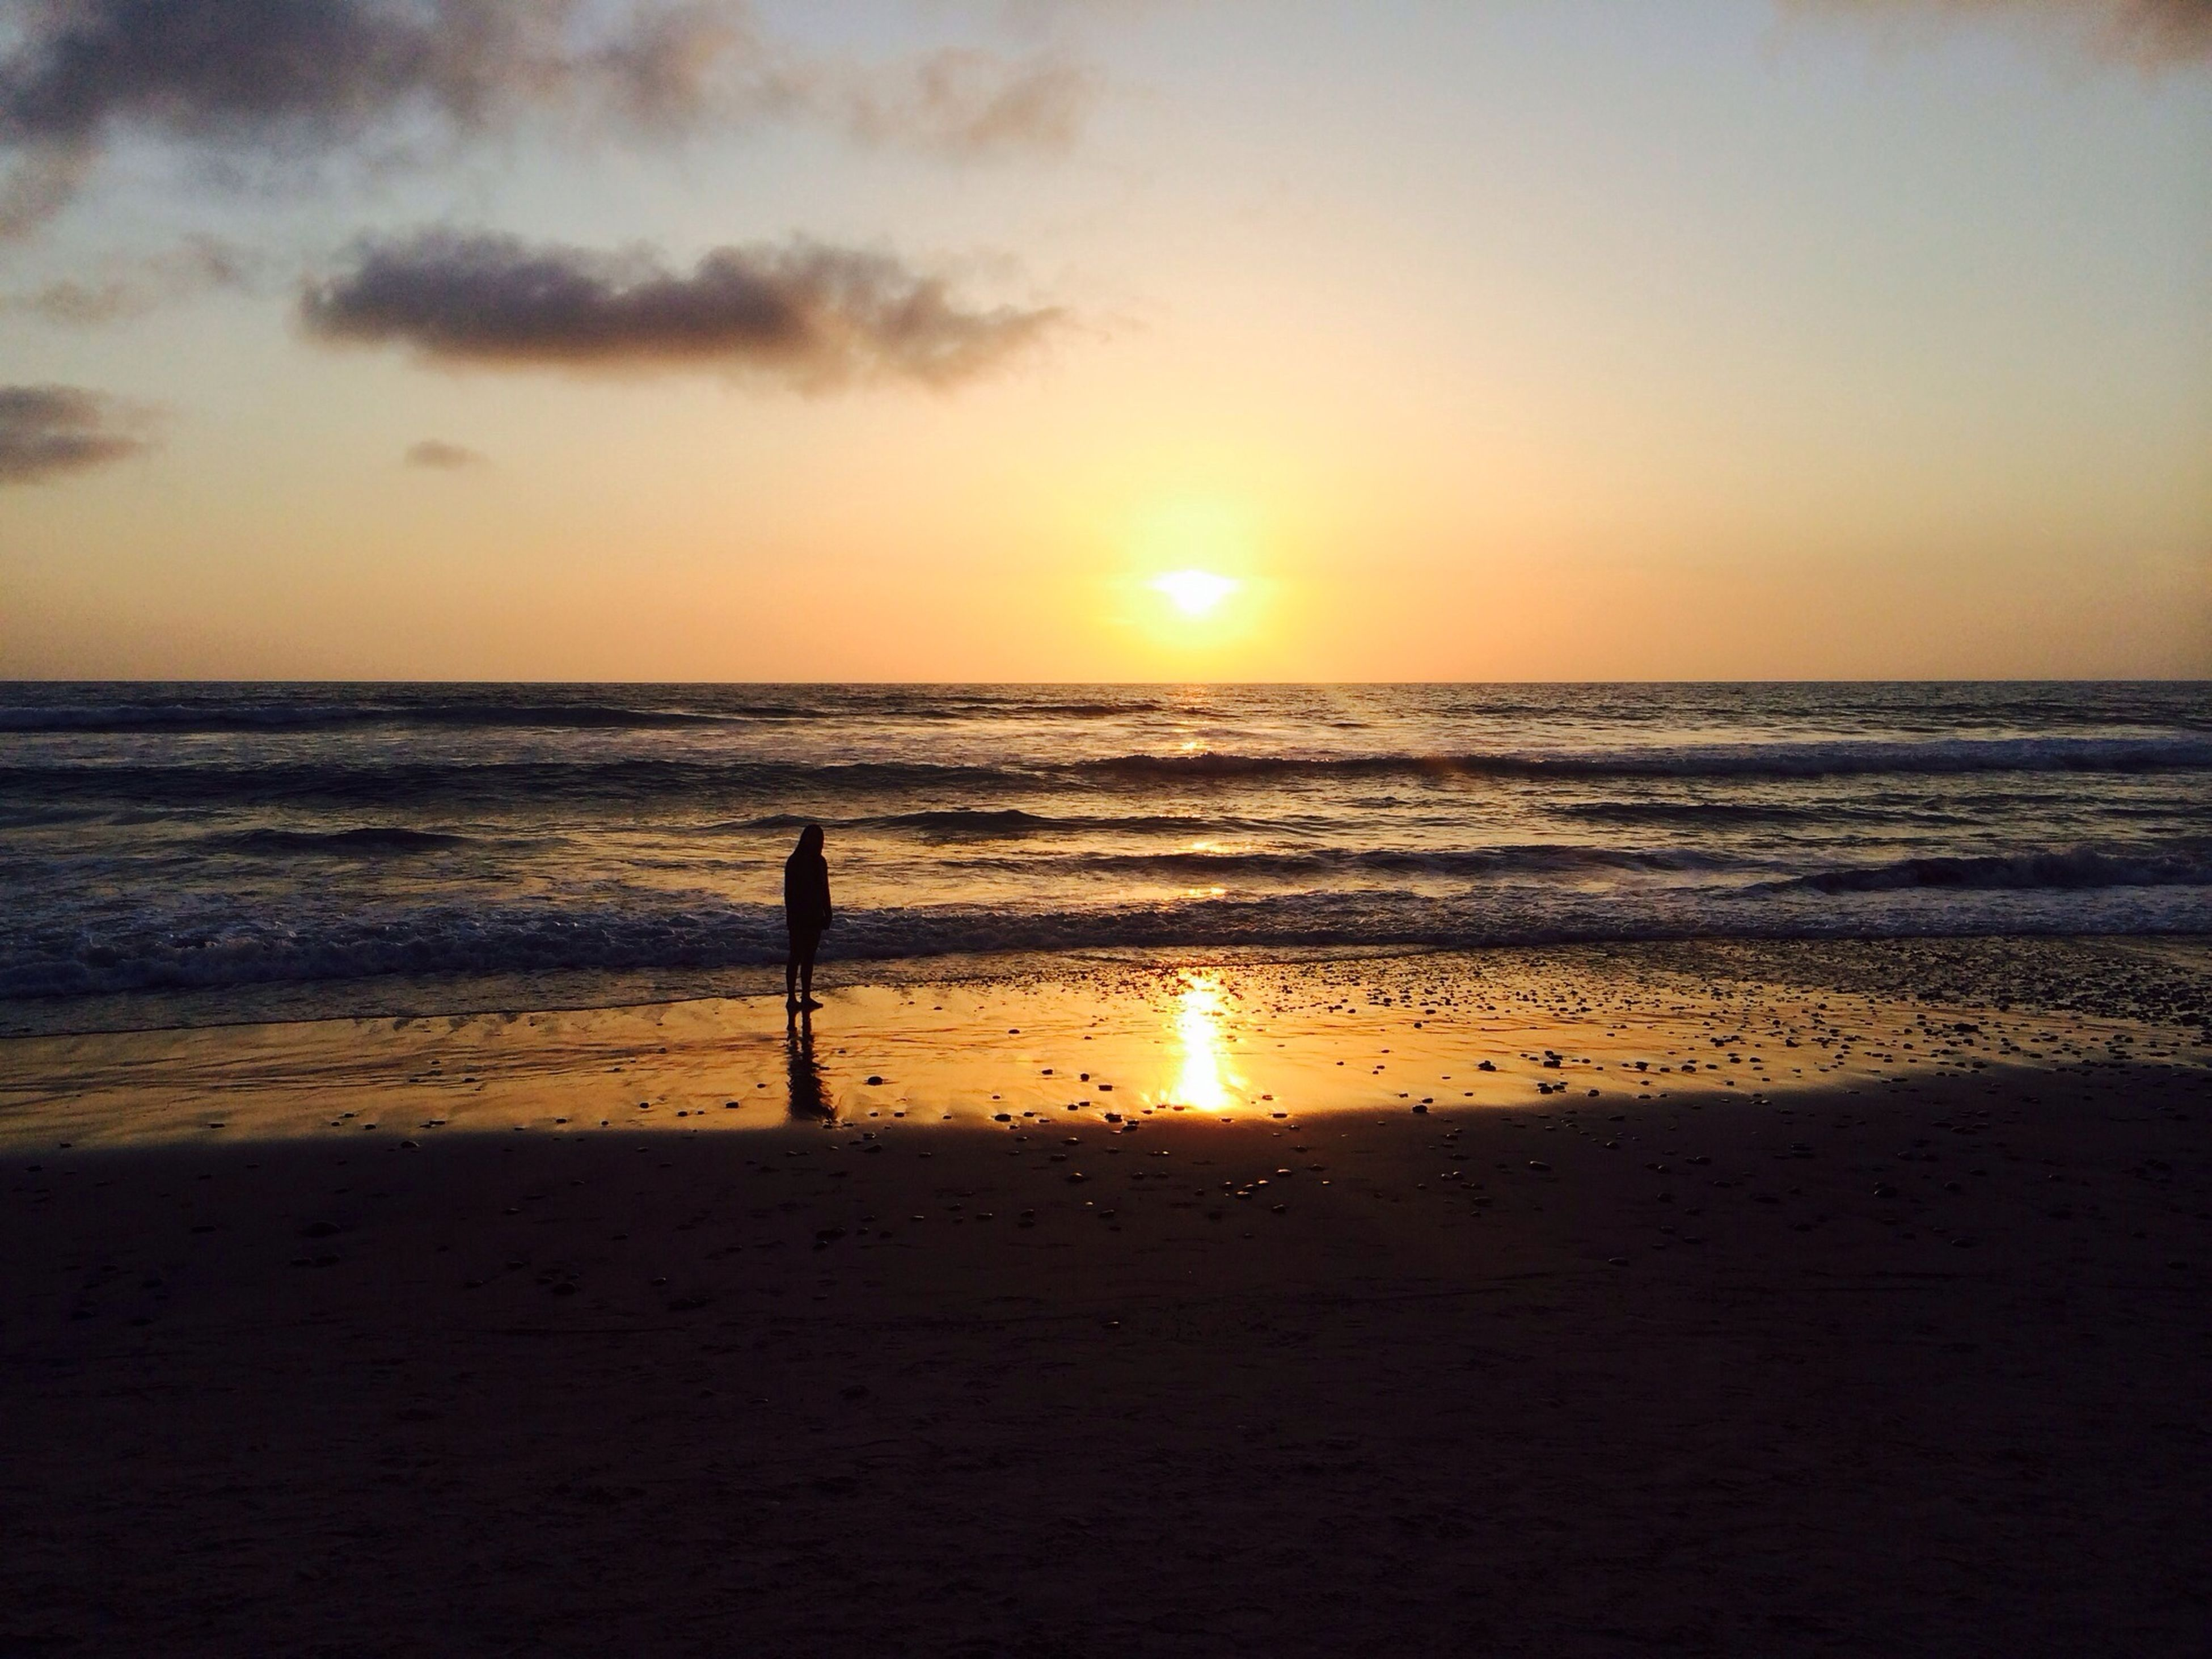 sea, sunset, horizon over water, beach, water, sun, shore, scenics, tranquil scene, orange color, beauty in nature, tranquility, silhouette, idyllic, sky, reflection, nature, sand, sunlight, vacations